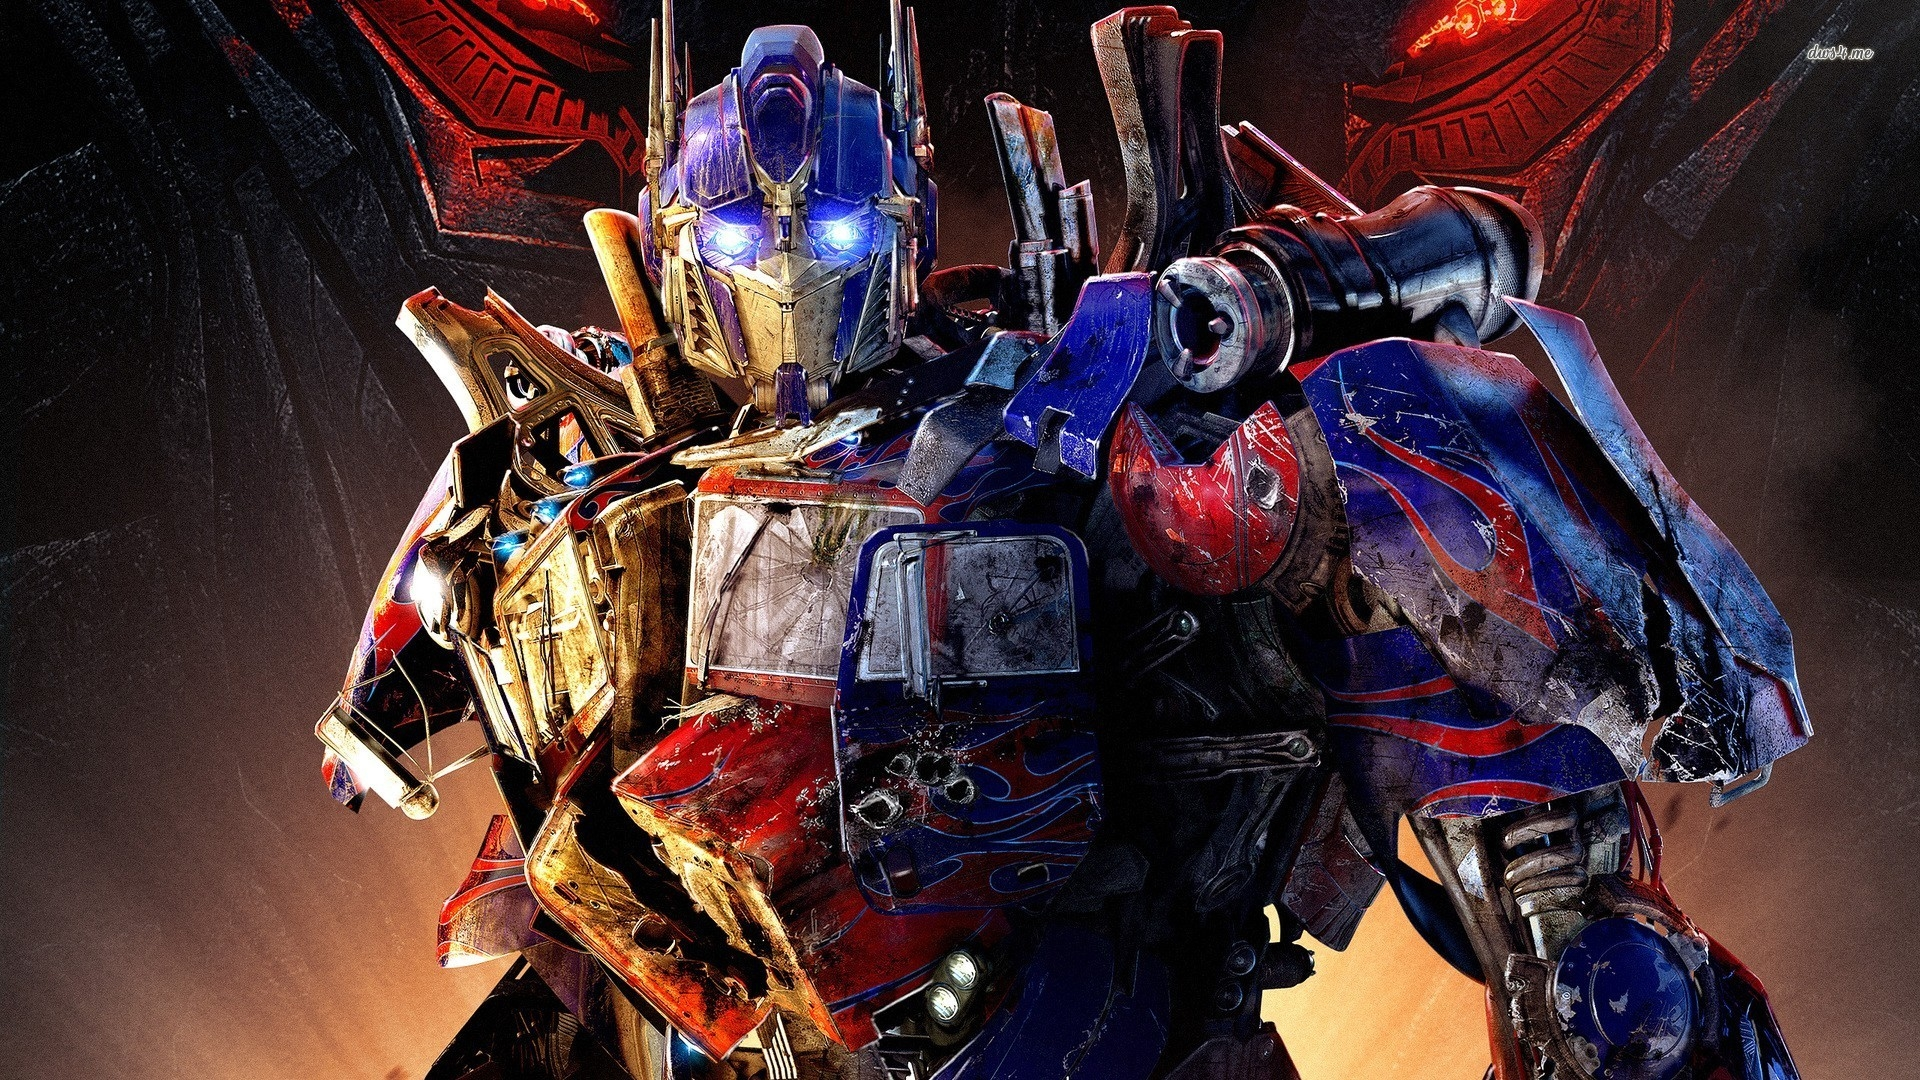 optimus prime wallpaper download - photo #4